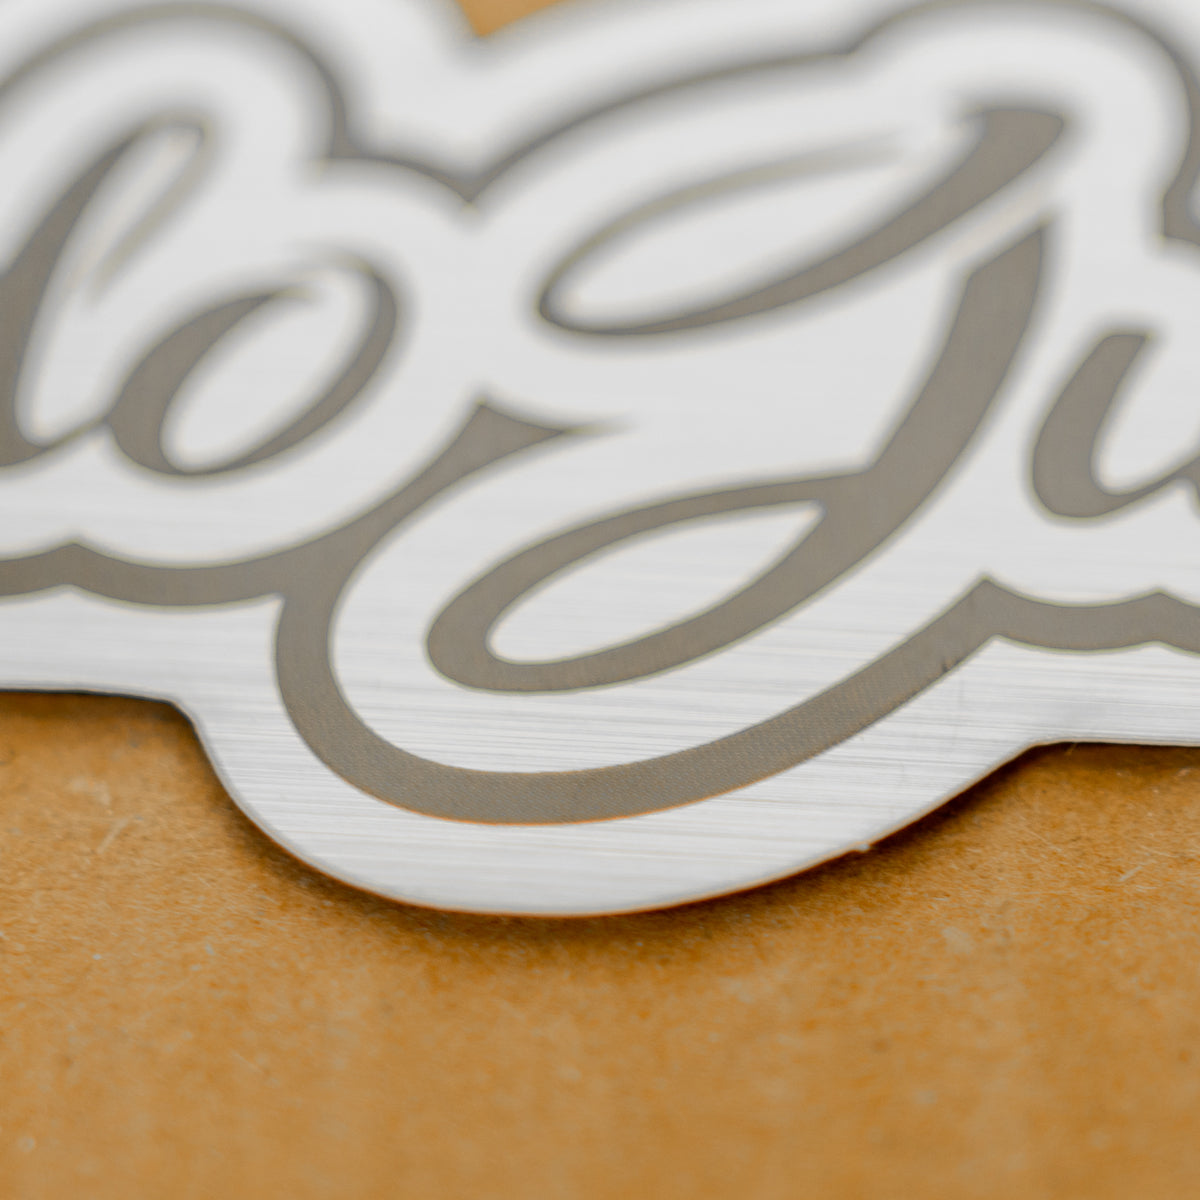 Dodo Juice REFRESH straight logo - brushed metal look